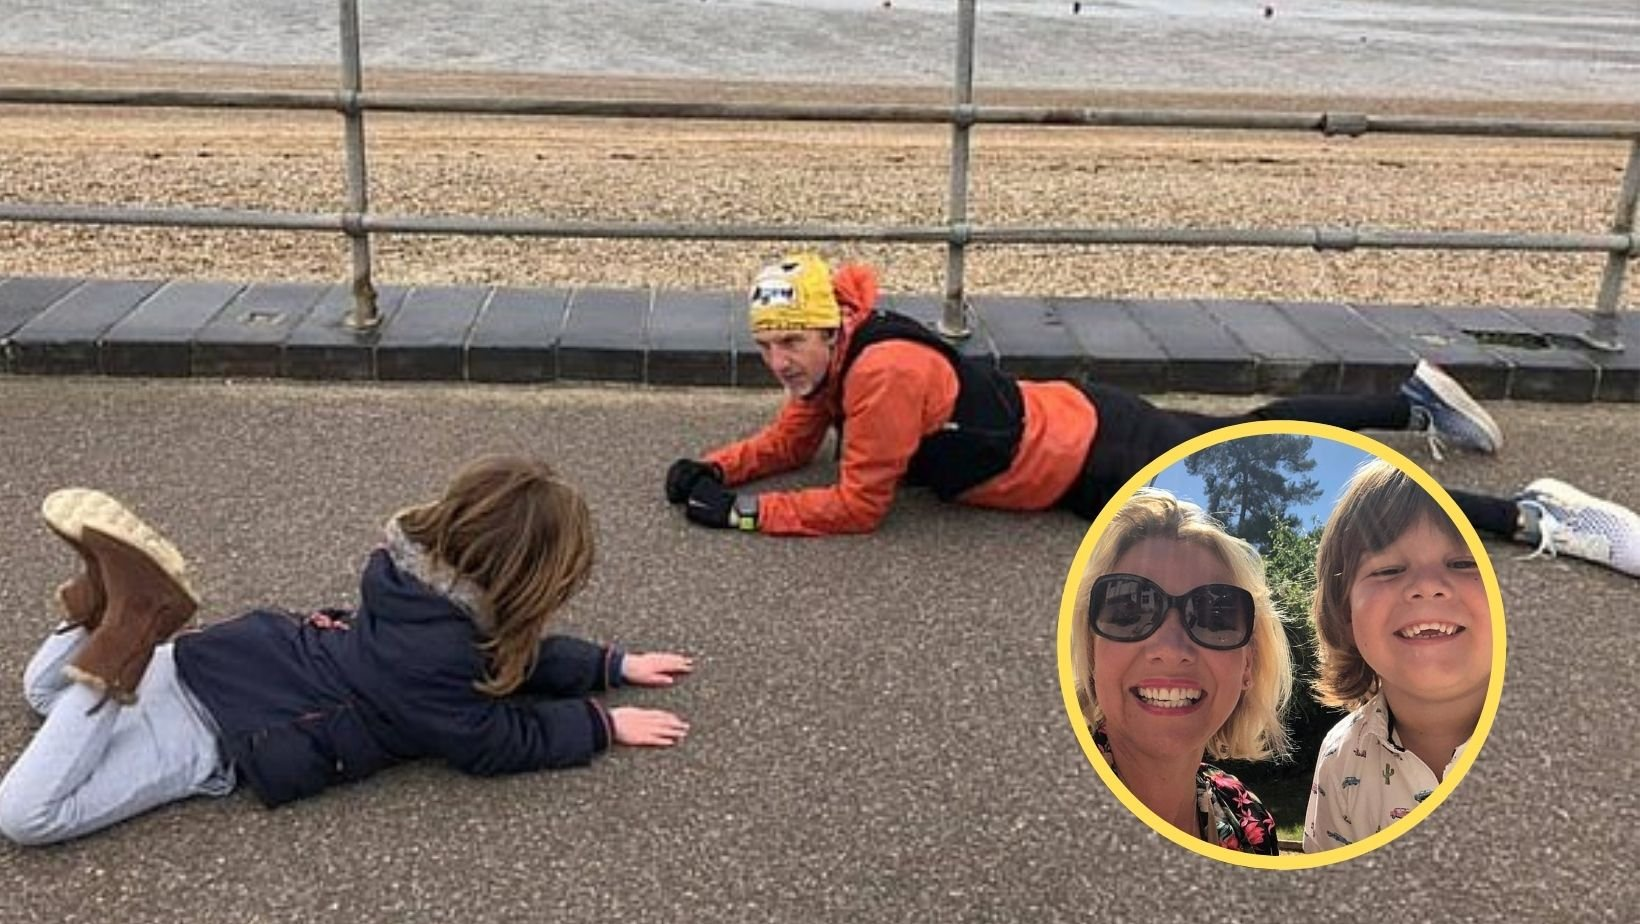 1 72.jpg?resize=412,275 - Mom Praises 'Hero' Passerby For Lying On The Floor To Stop Her Autistic Son From Having A Meltdown